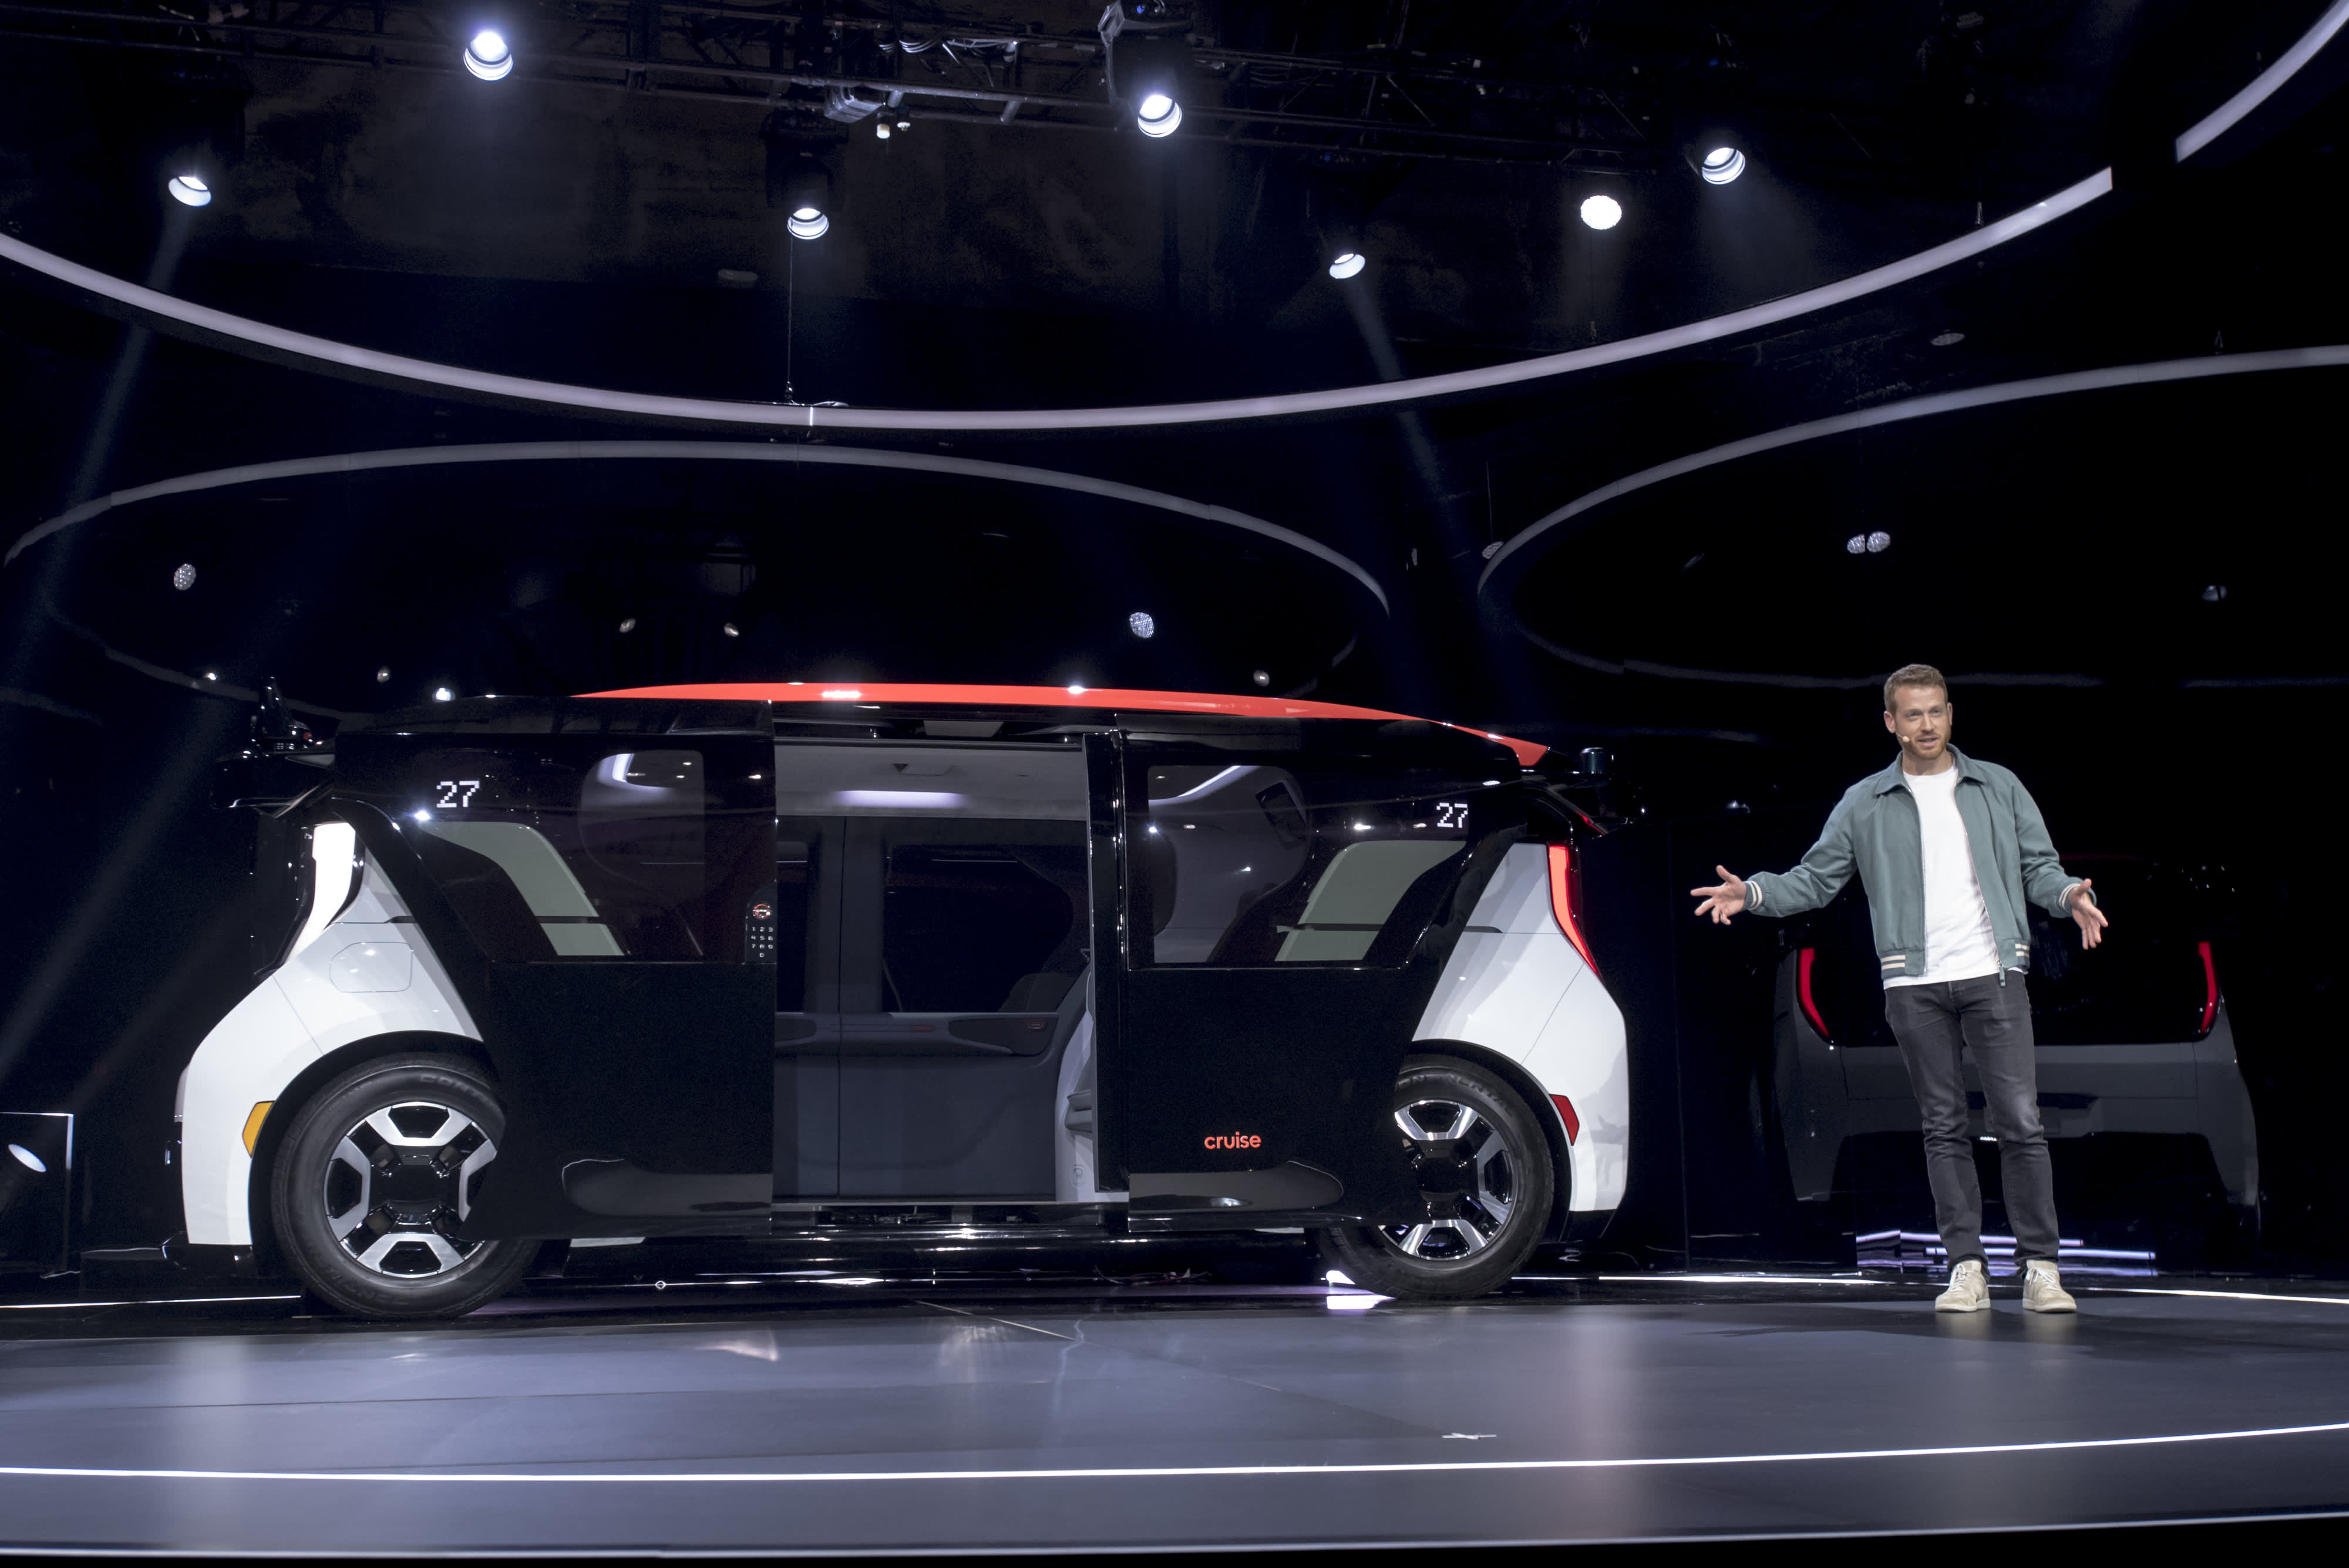 General Motors-backed Cruise is set to expand self-driving operations to Dubai in 2023